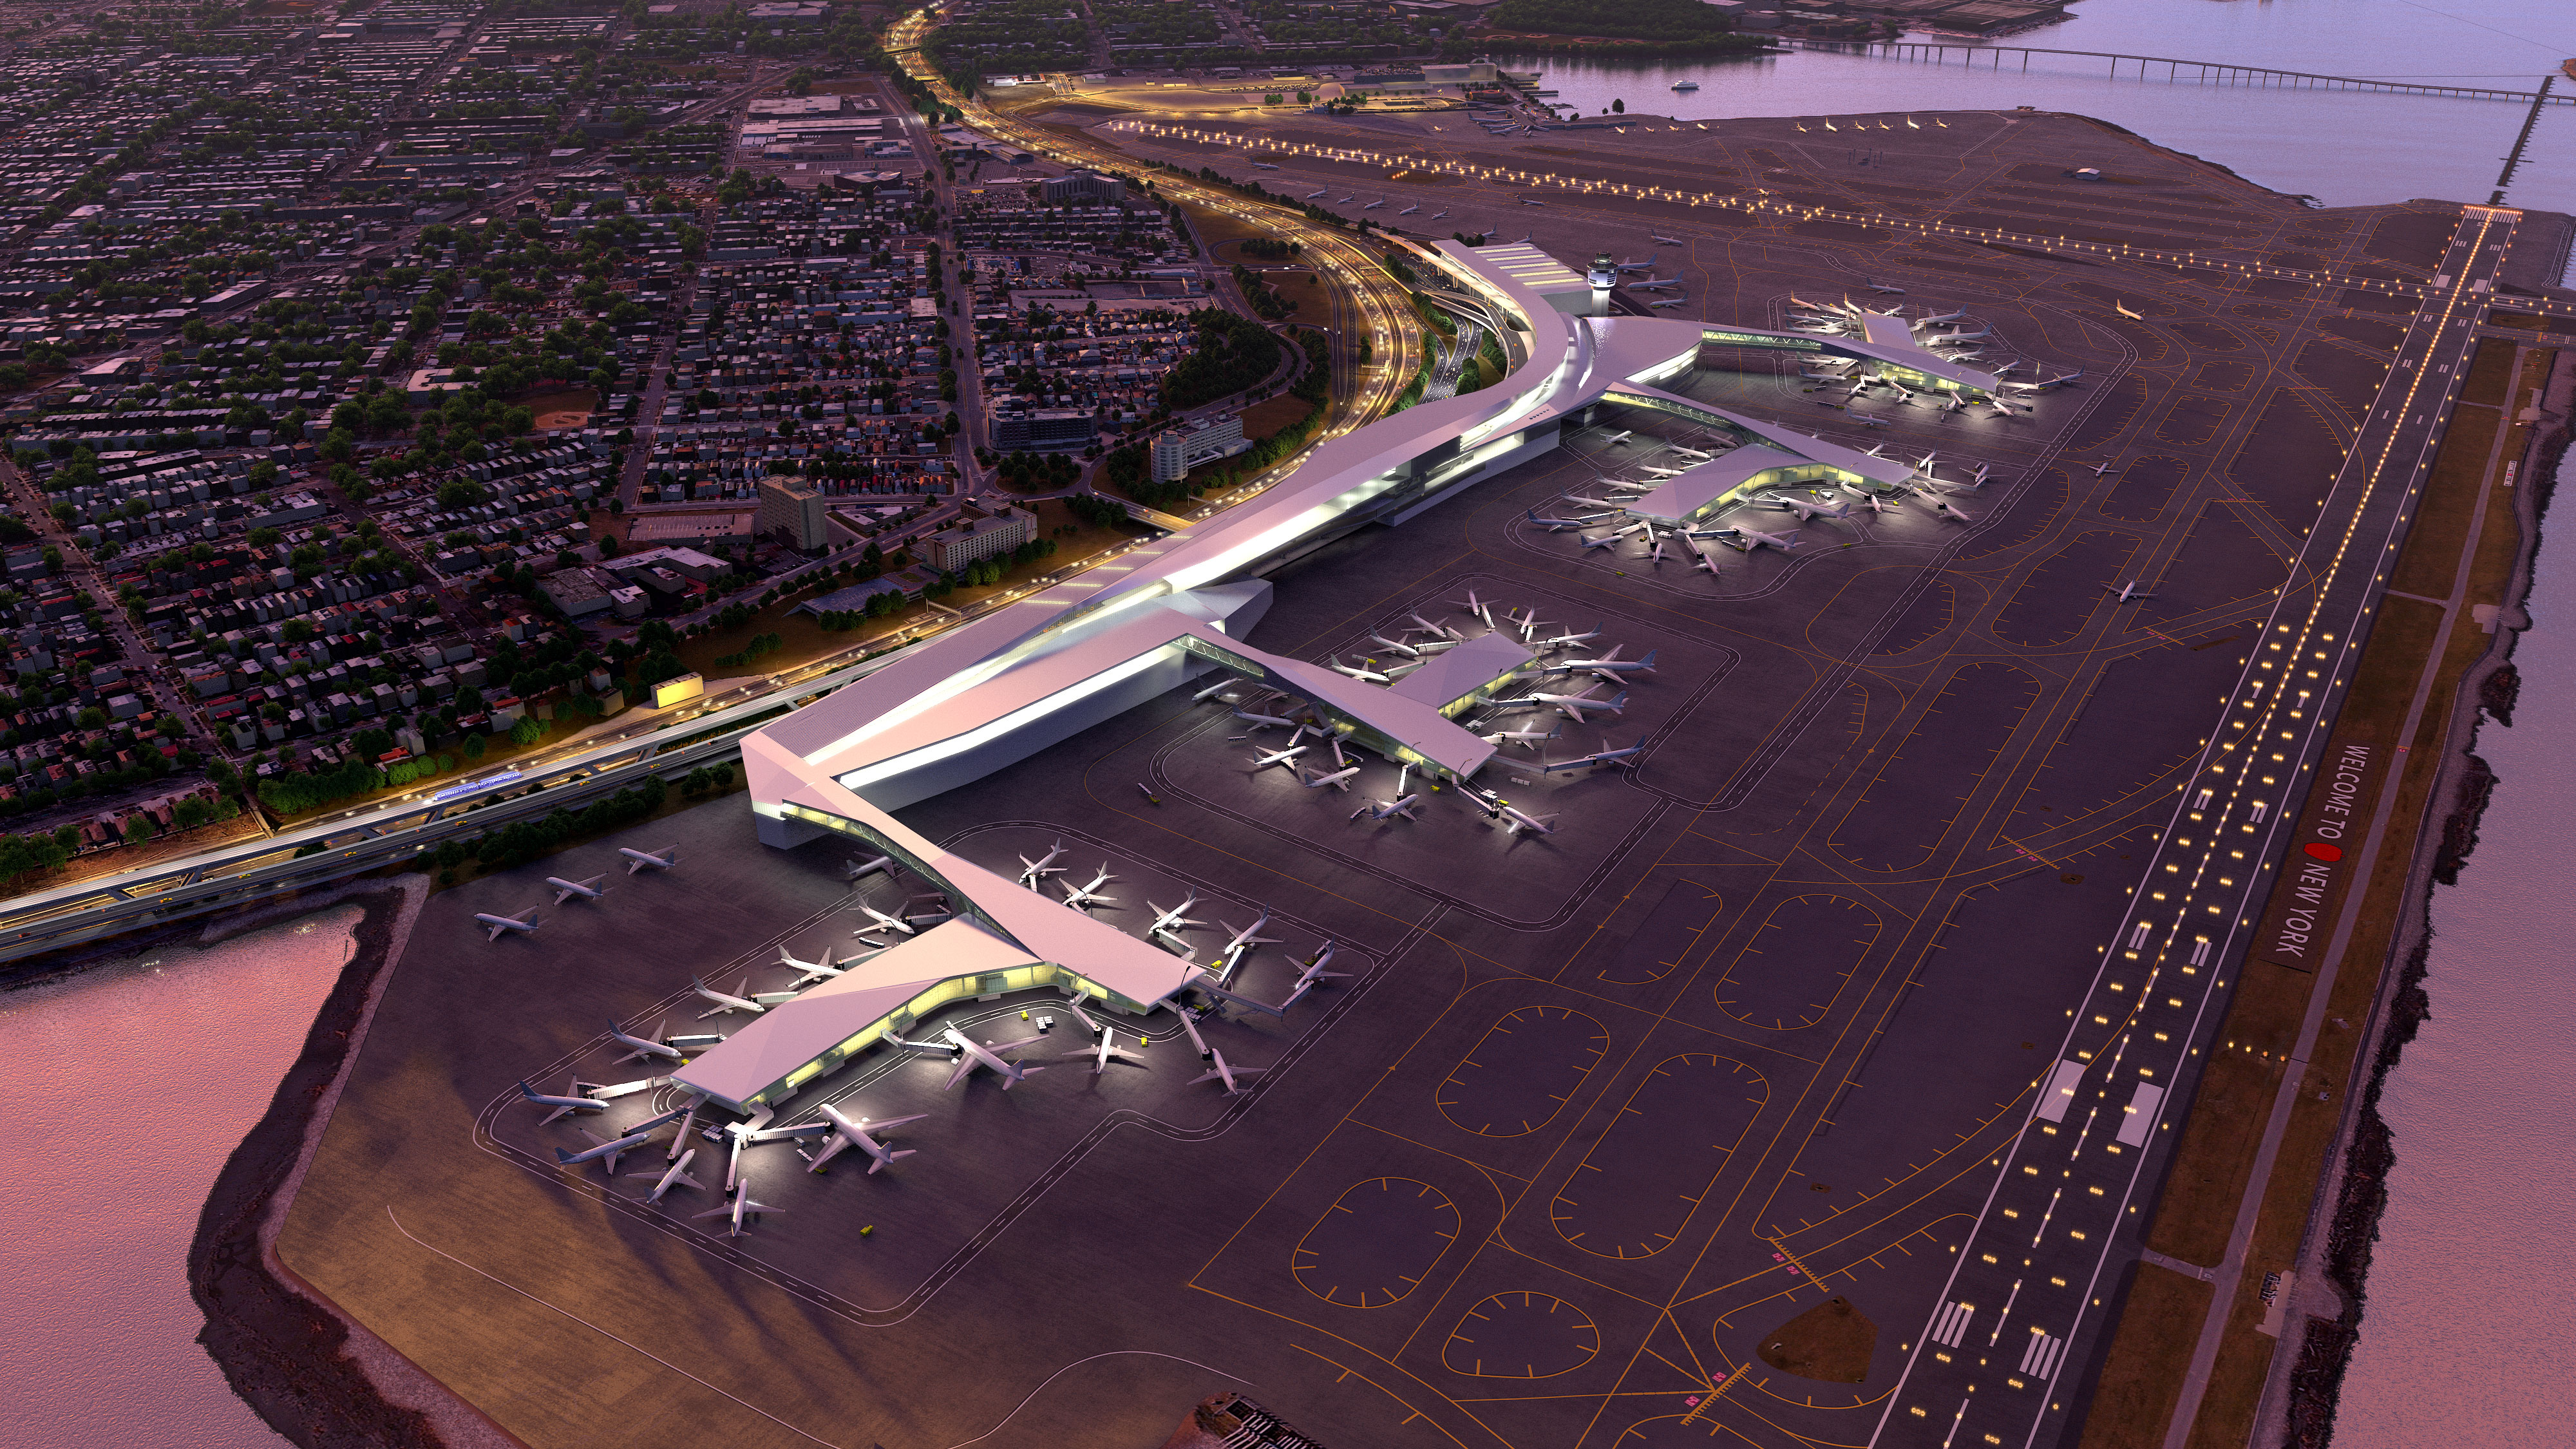 NY Delta to partner on LGA redevelopment  Delta News Hub